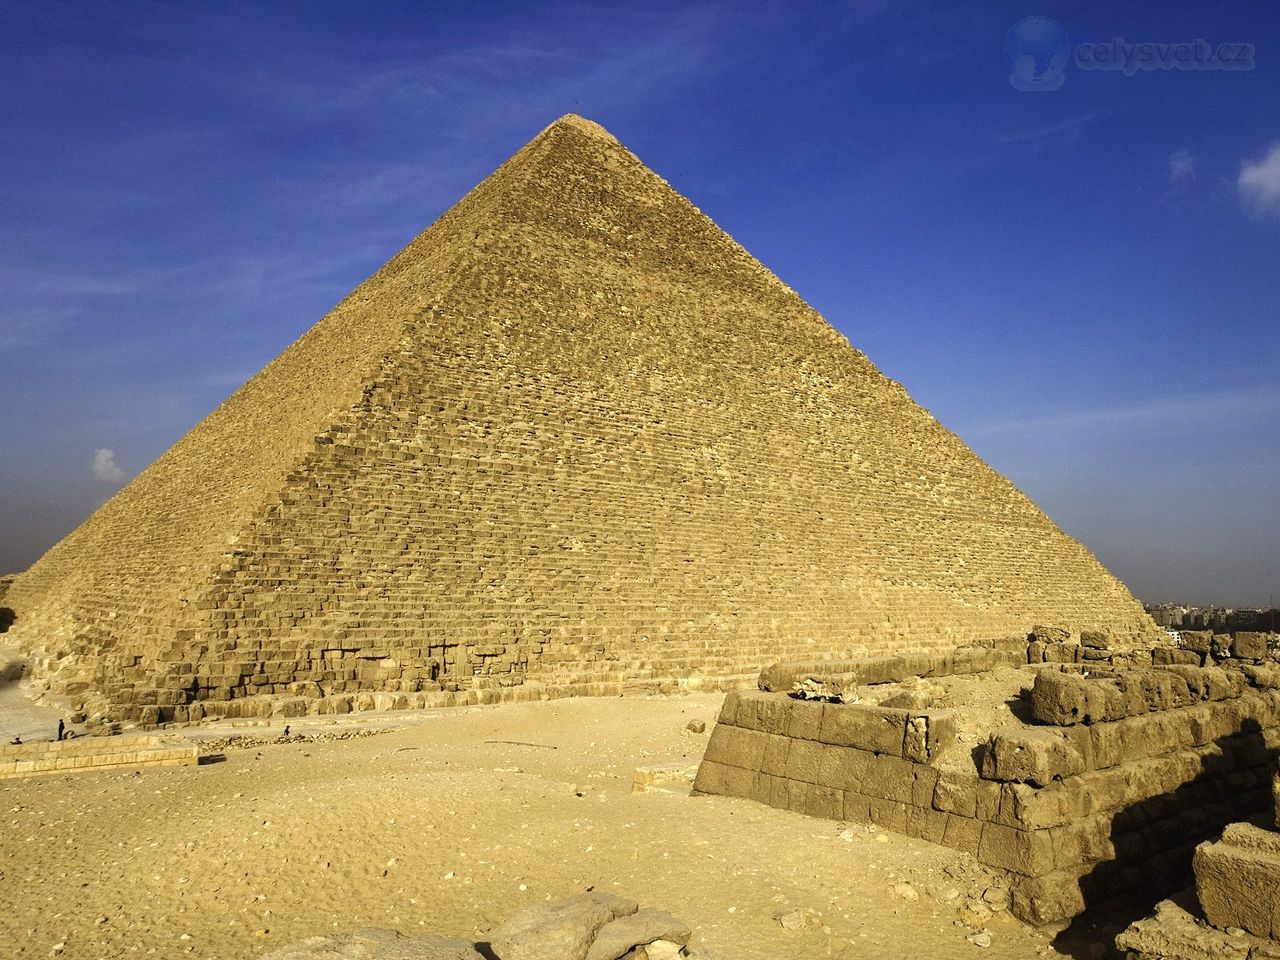 the great pyramid There is debate as to the geometry used in the design of the great pyramid of giza in egypt built around 2560 bc, its once flat, smooth outer shell is gone and all that remains is the roughly-shaped inner core, so it is difficult to know with absolute certainty.